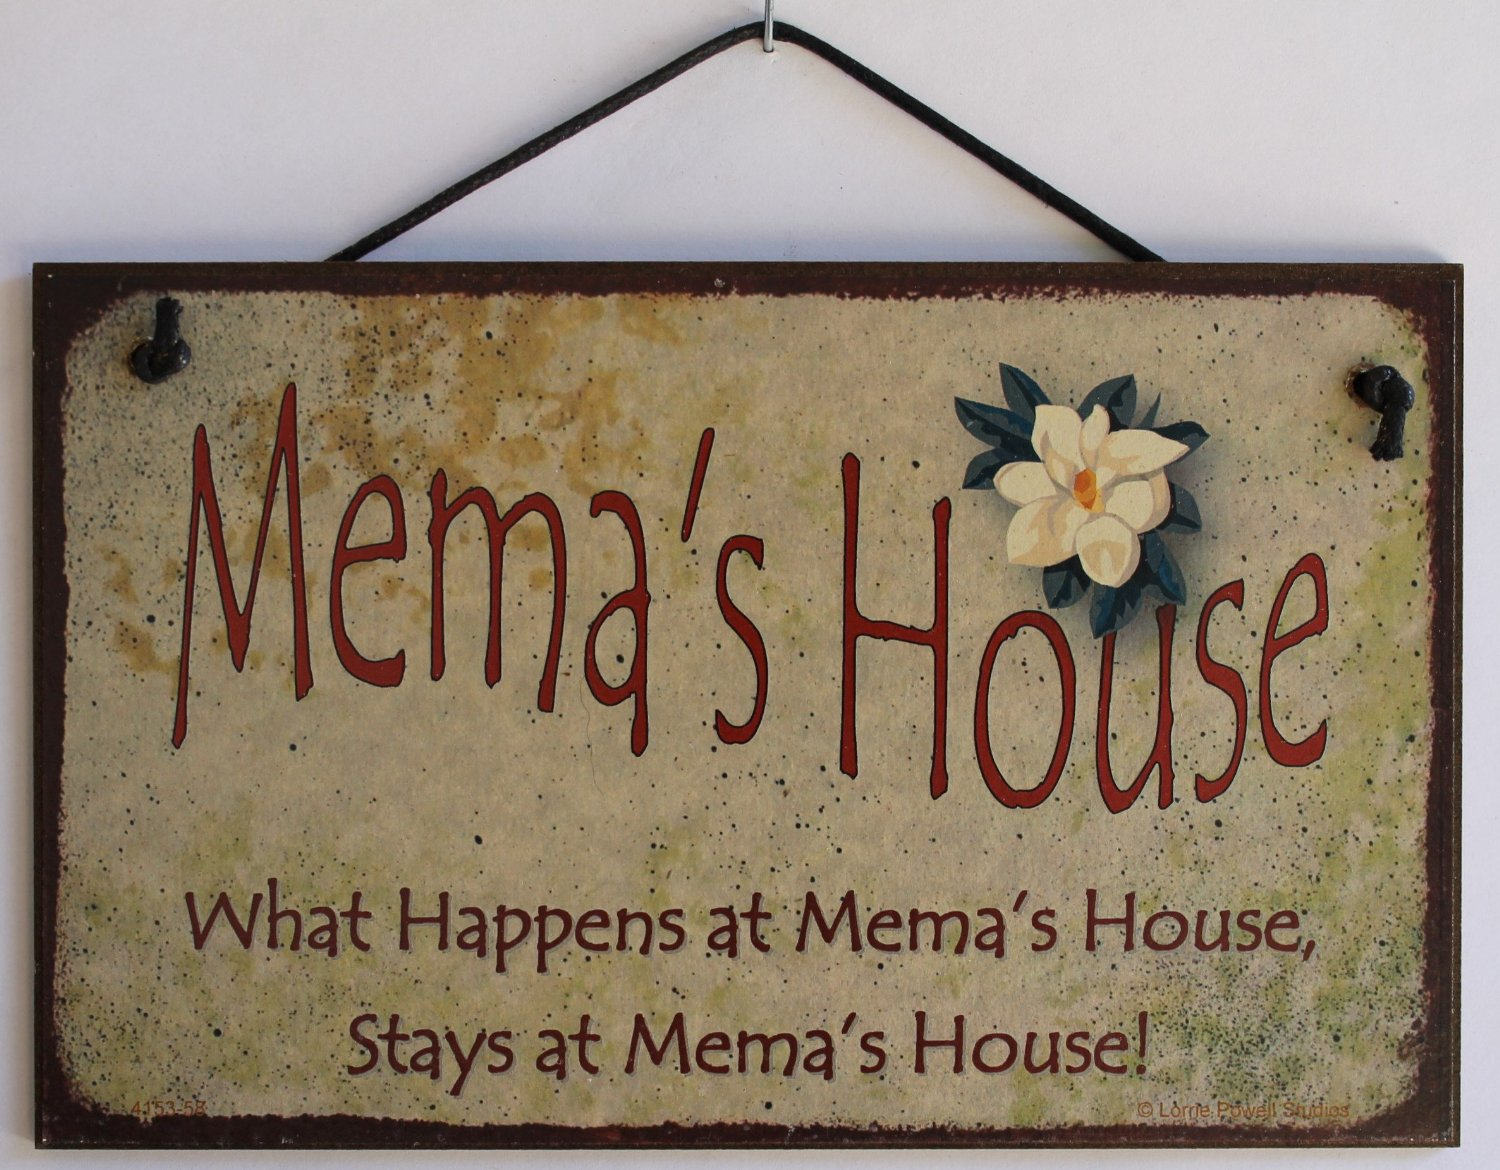 "5x8 Vintage Style Sign with Magnolia Saying, ""Mema's House What Happens at Mema's House, Stays at Mema's House!"""